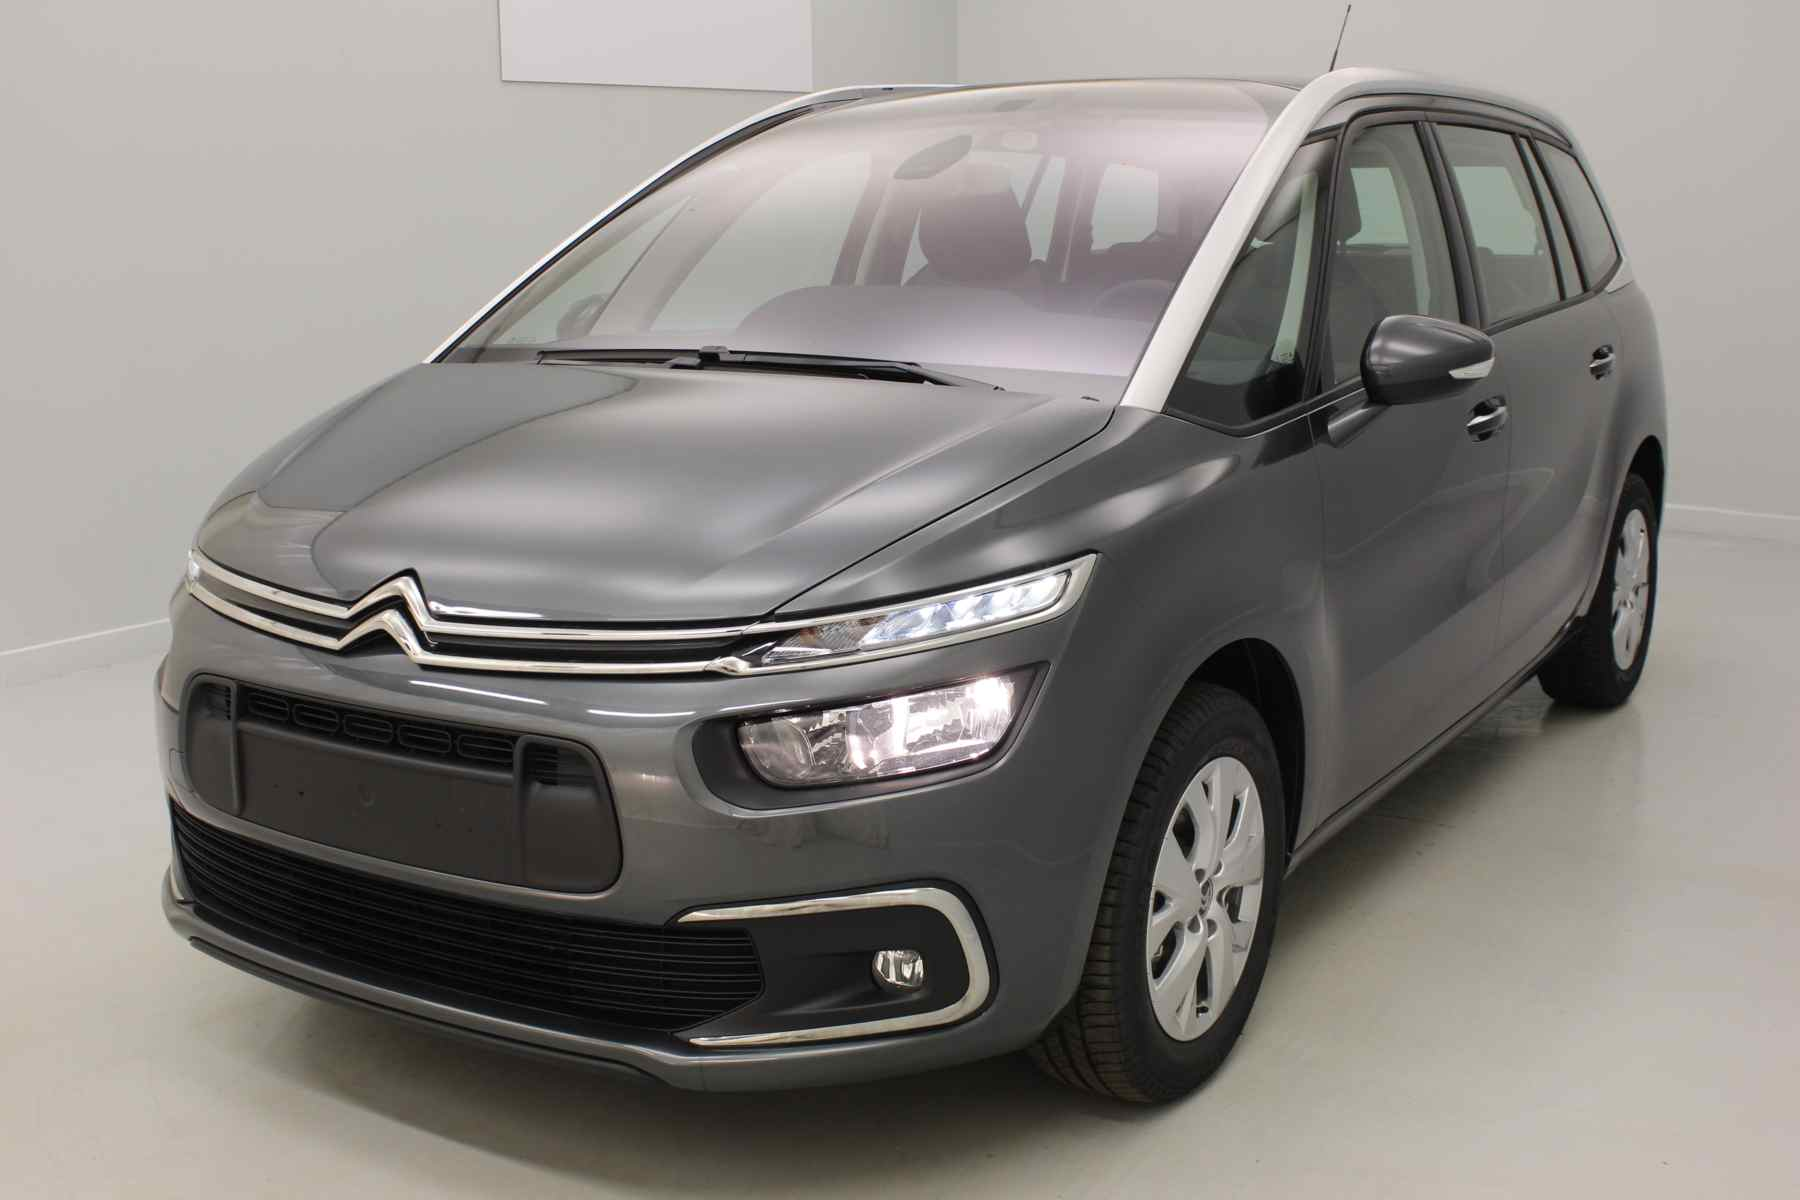 CITROEN Grand C4 Picasso BlueHDi 120 S&S Feel Gris Shark + Accès démarrage mains libres + Alarme avec options